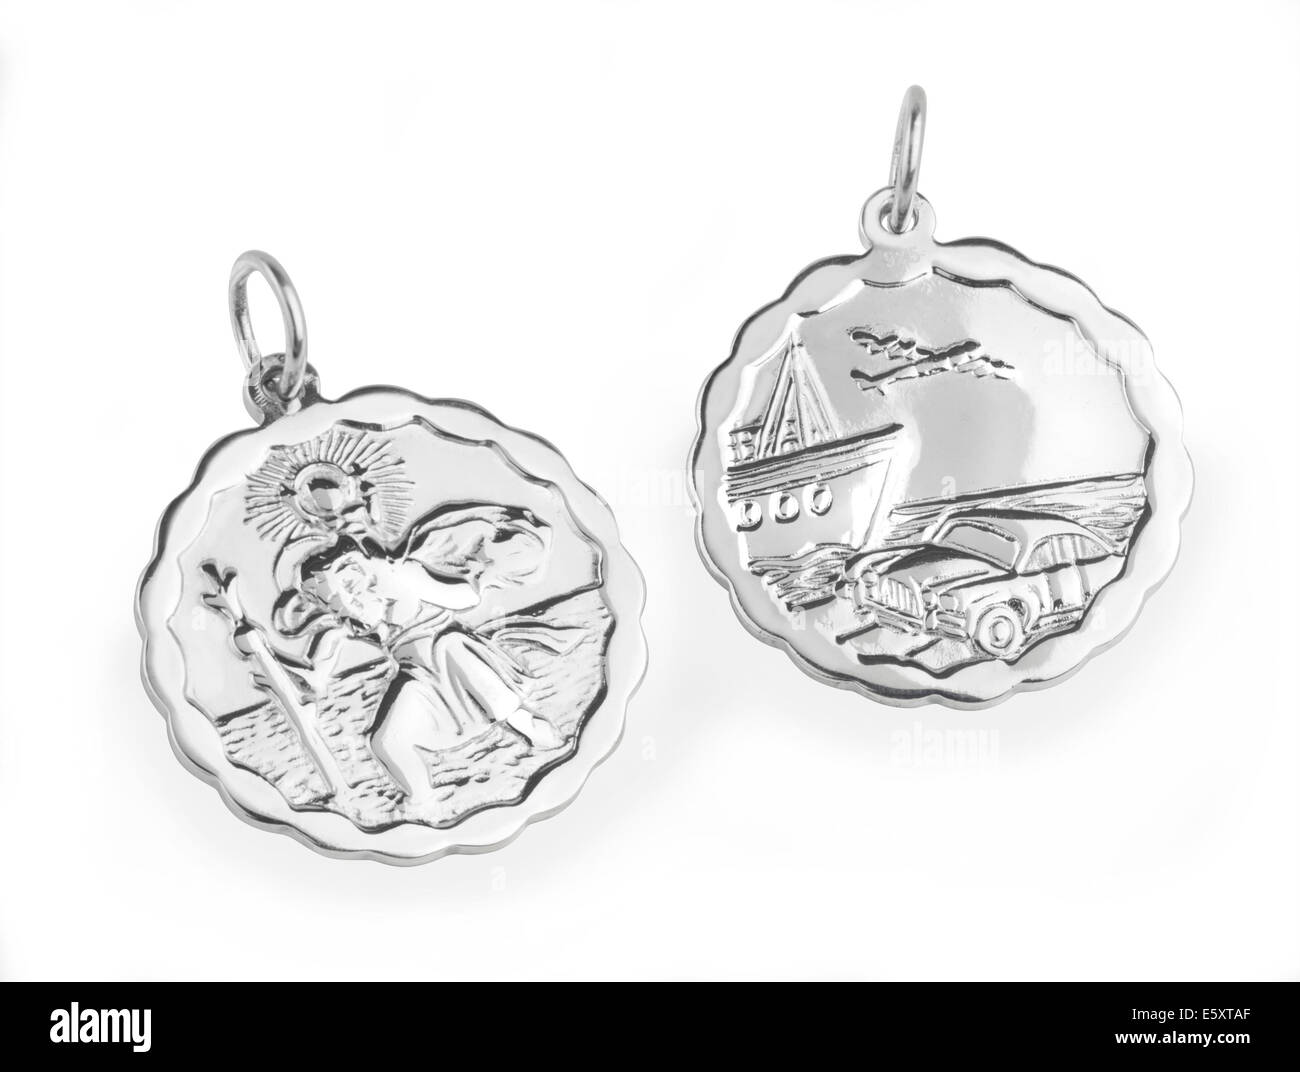 St Christopher pendant front and back images - Stock Image